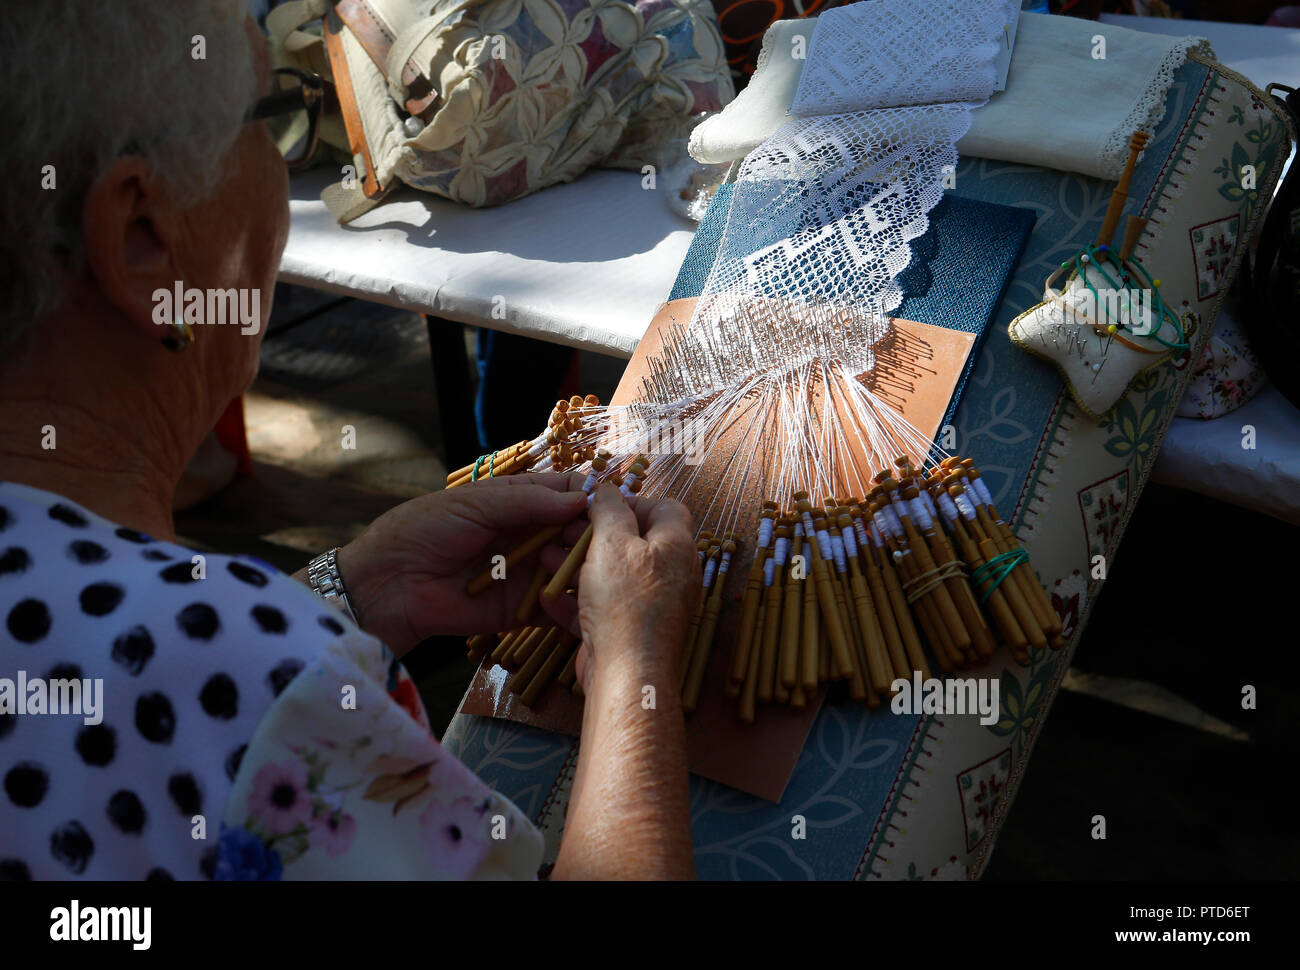 Bobbin lace weaver woman showing her traditional handmade technique during a local fair in the village of Esporles in the Spanish island of Mallorca. - Stock Image